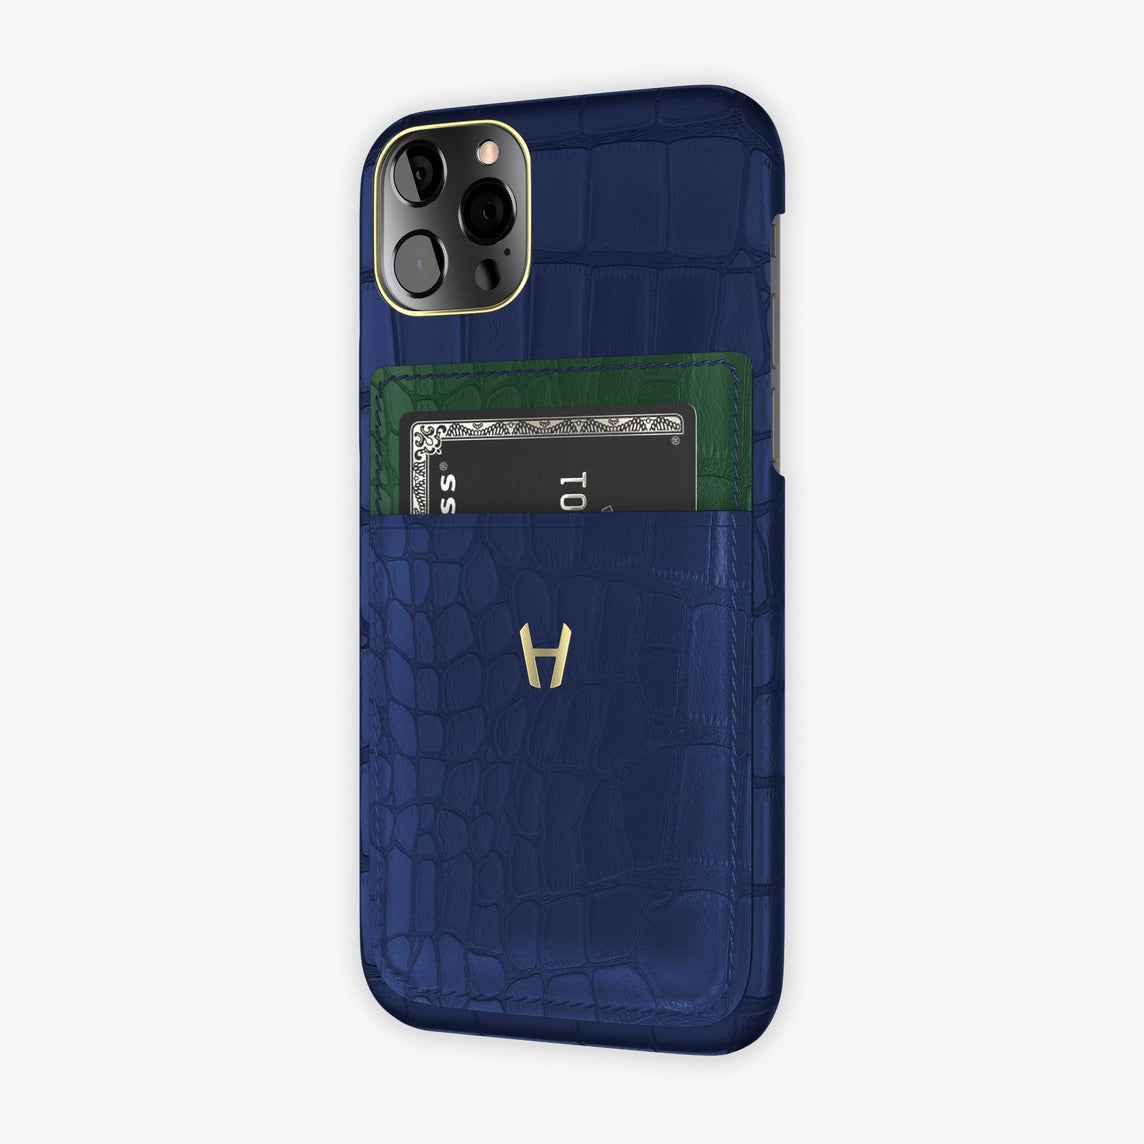 Alligator Pocket Case iPhone 12 & 12 Pro | Navy Blue/Green - Yellow Gold